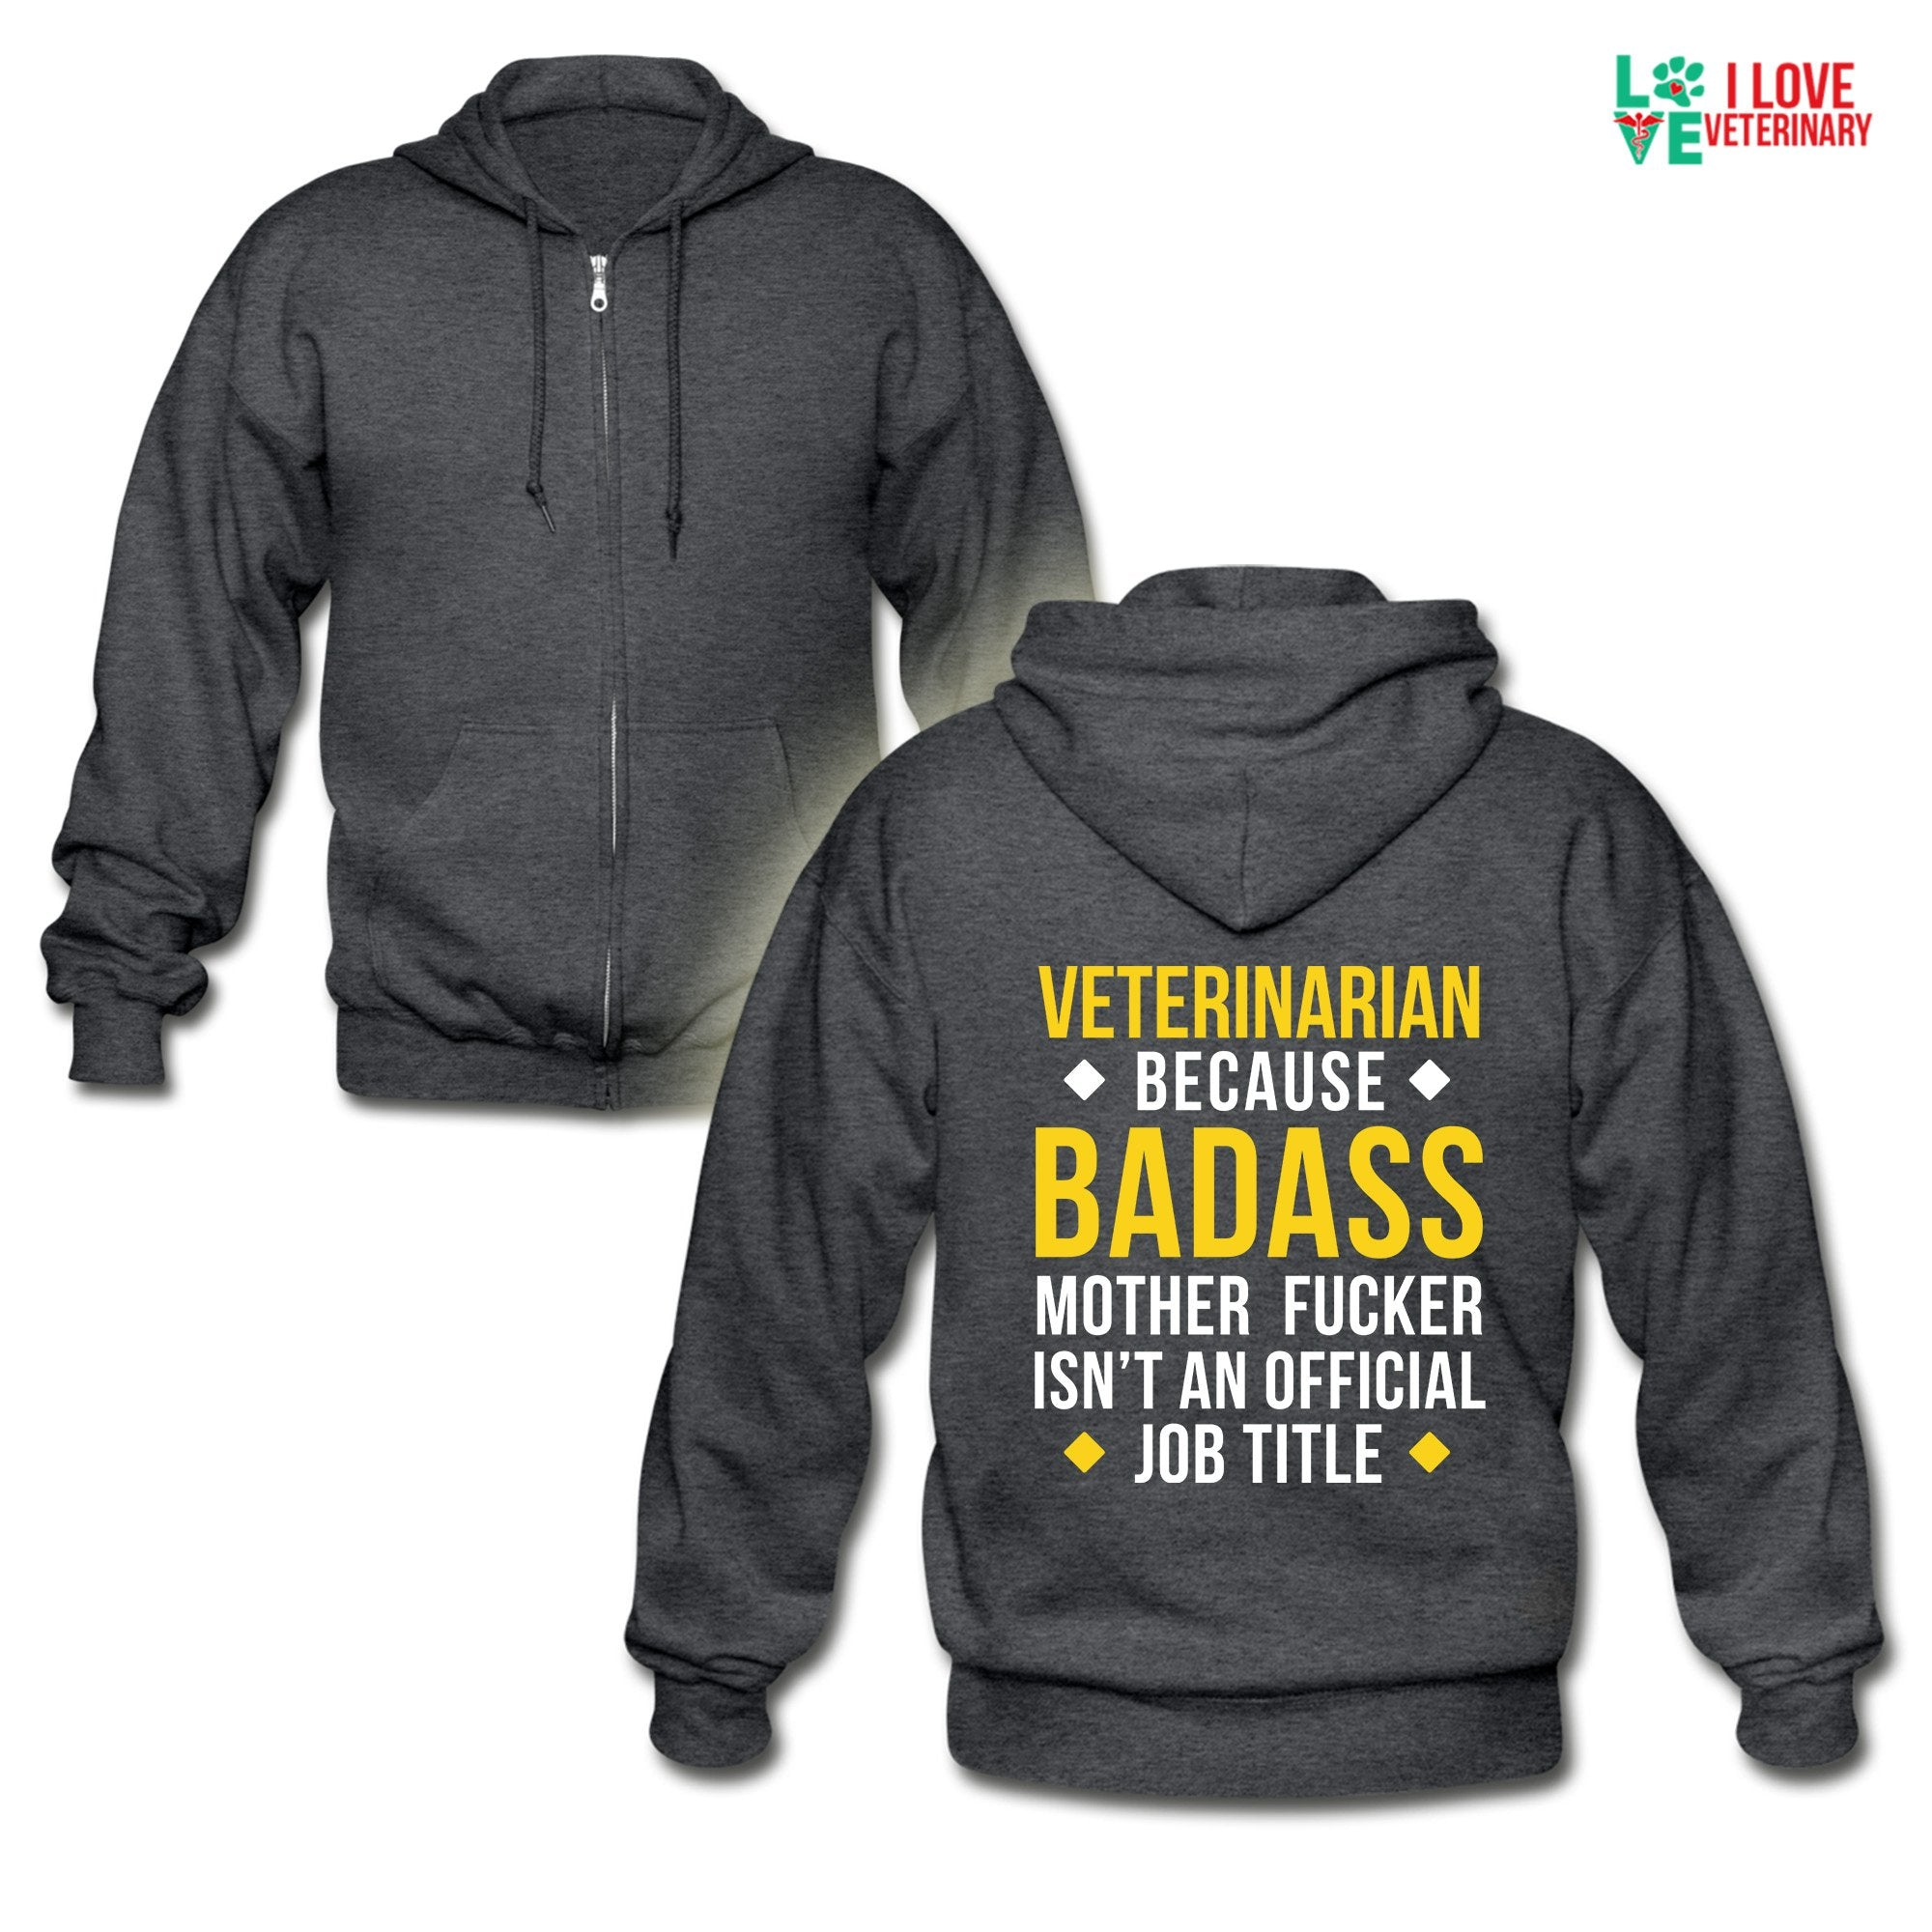 Veterinarian because badass mother fucker isn't an official job title Unisex Zip Hoodie-Gildan Heavy Blend Adult Zip Hoodie-I love Veterinary